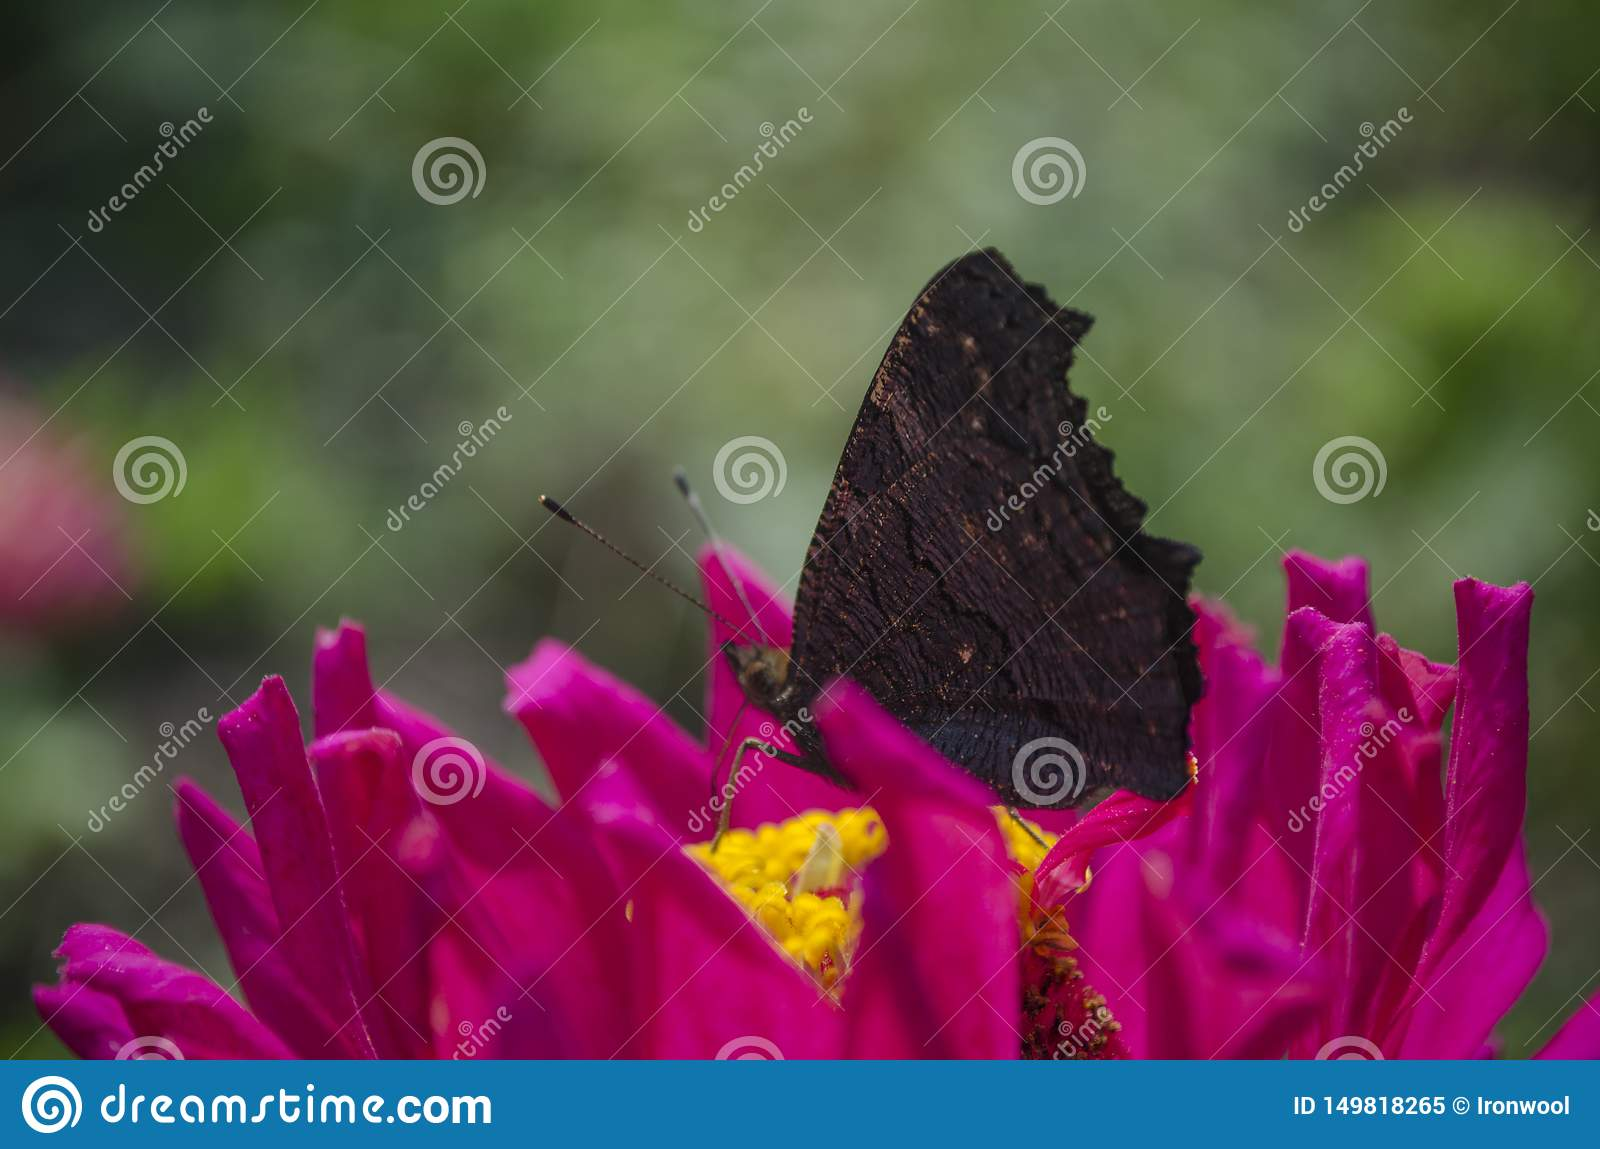 Colorful european peacock butterfly Inachis io, Aglais io sits on an magenta Zinnia flower with closed wings, blurred